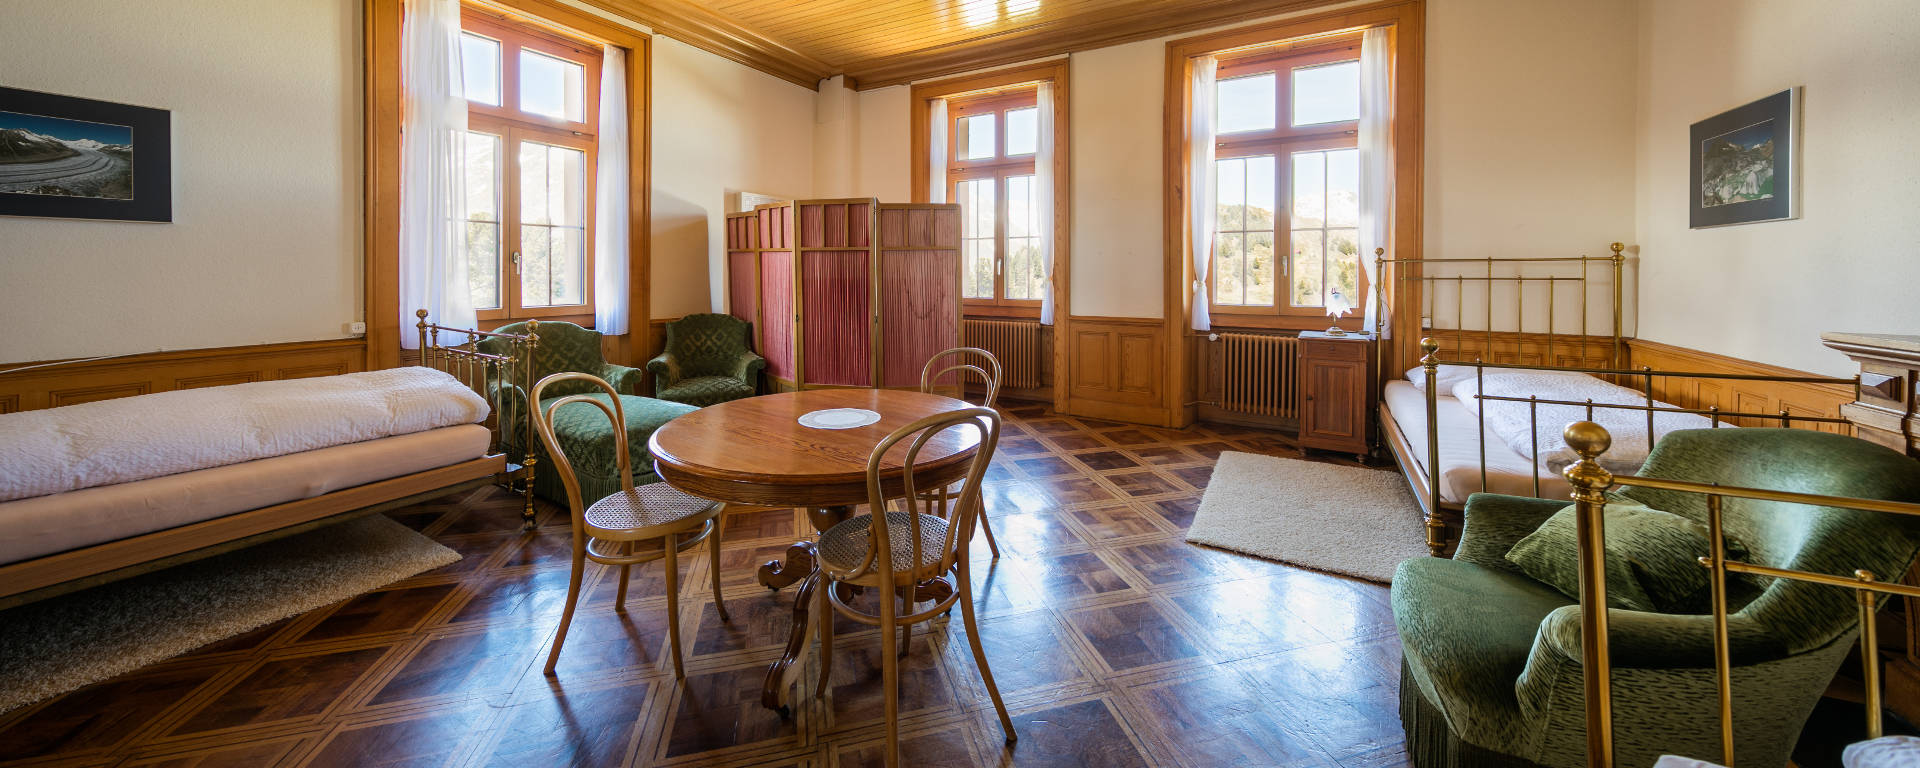 Suite in Villa Cassel © Pro Natura Zentrum Aletsch